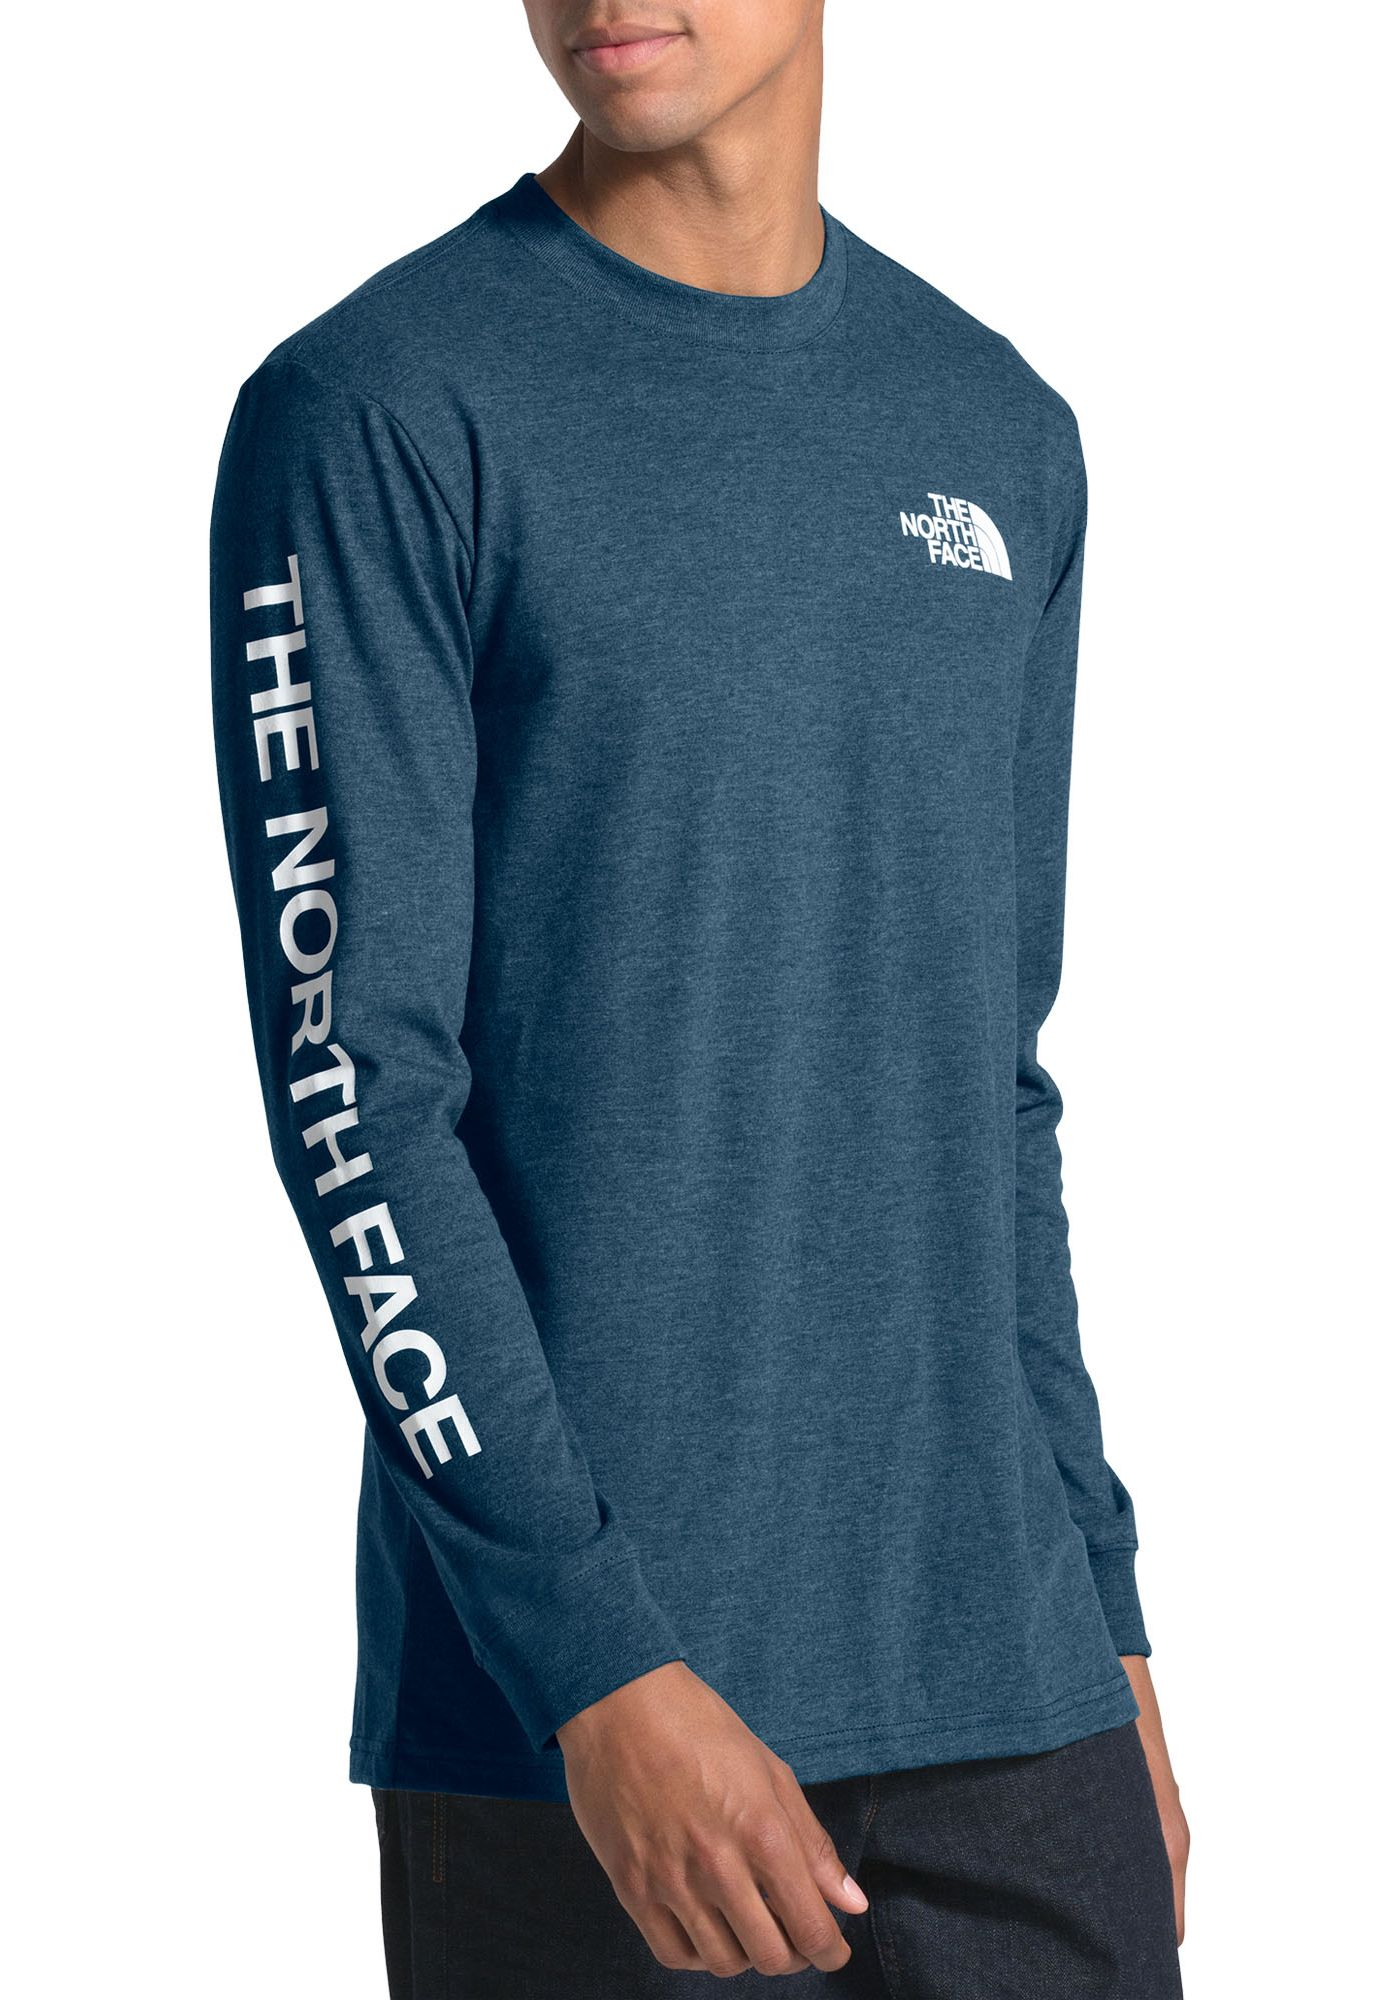 The North Face Men's Long Sleeve Brand Proud Cotton Fashion T-Shirt